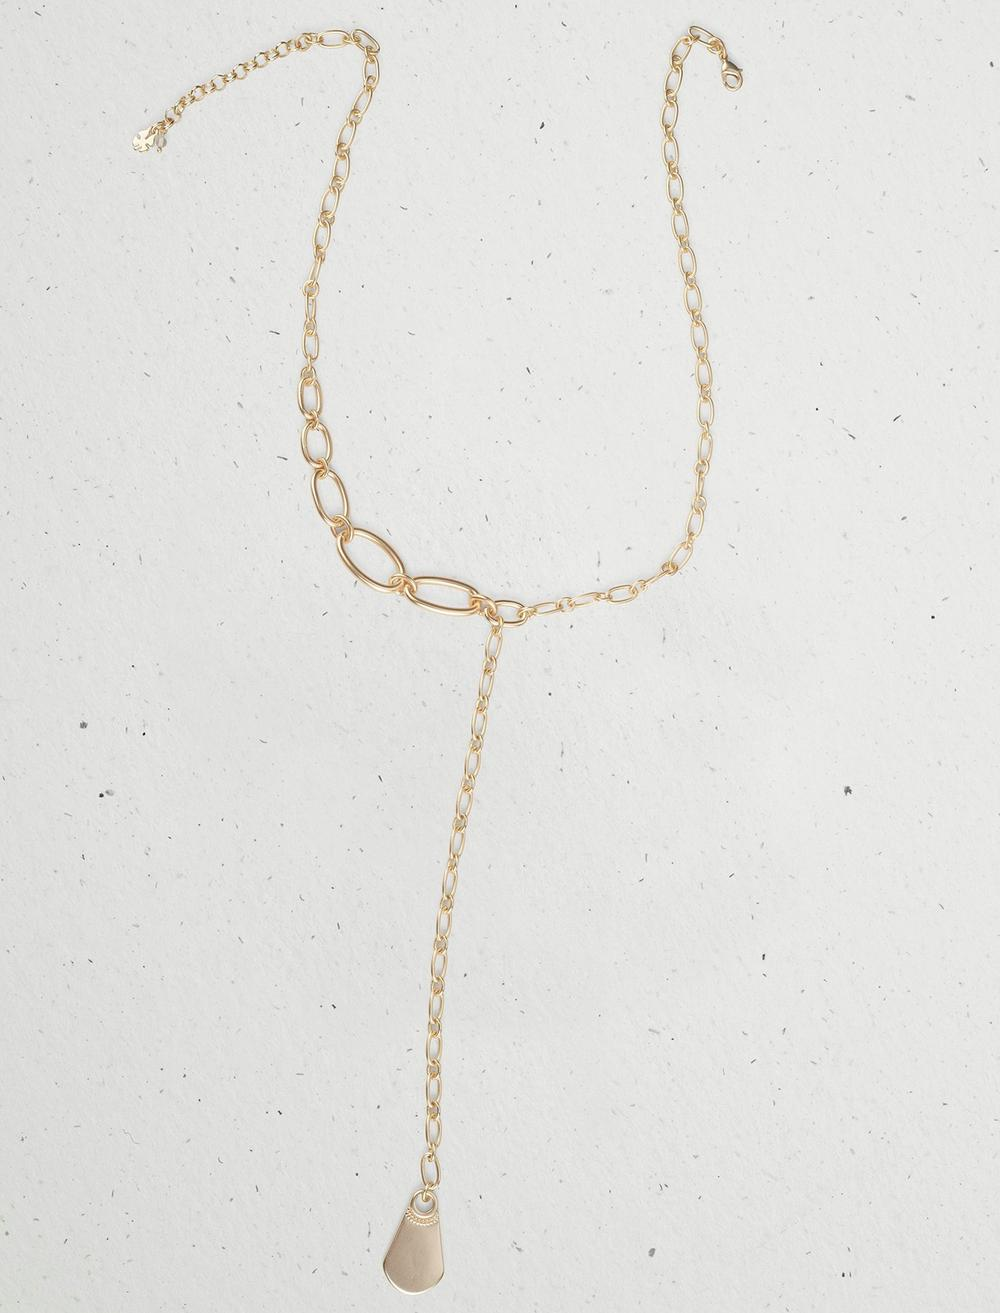 ASYMMETRICAL CHAIN Y NECKLACE, image 1